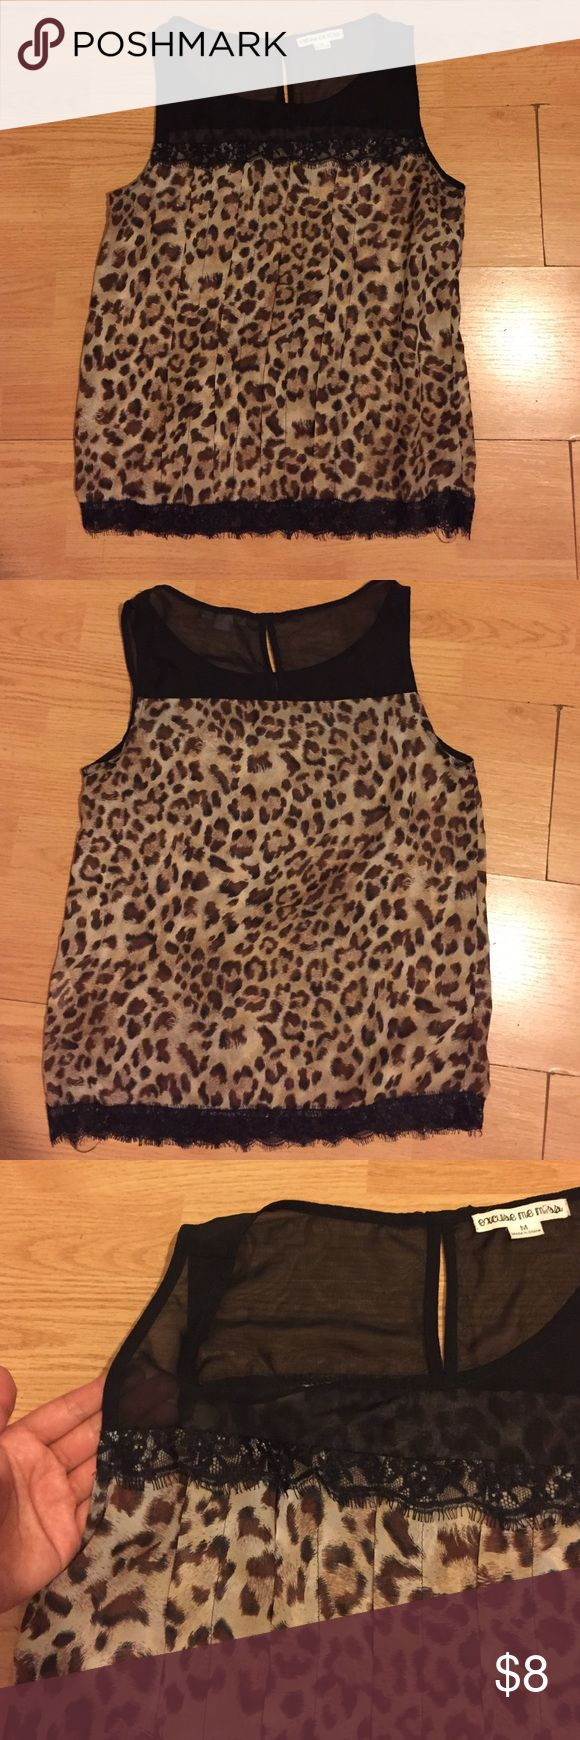 Sleeveless Leopard Blouse Sleeveless leopard blouse. See through. Also comes with lace design. Worn once. Open to offers! Tops Blouses